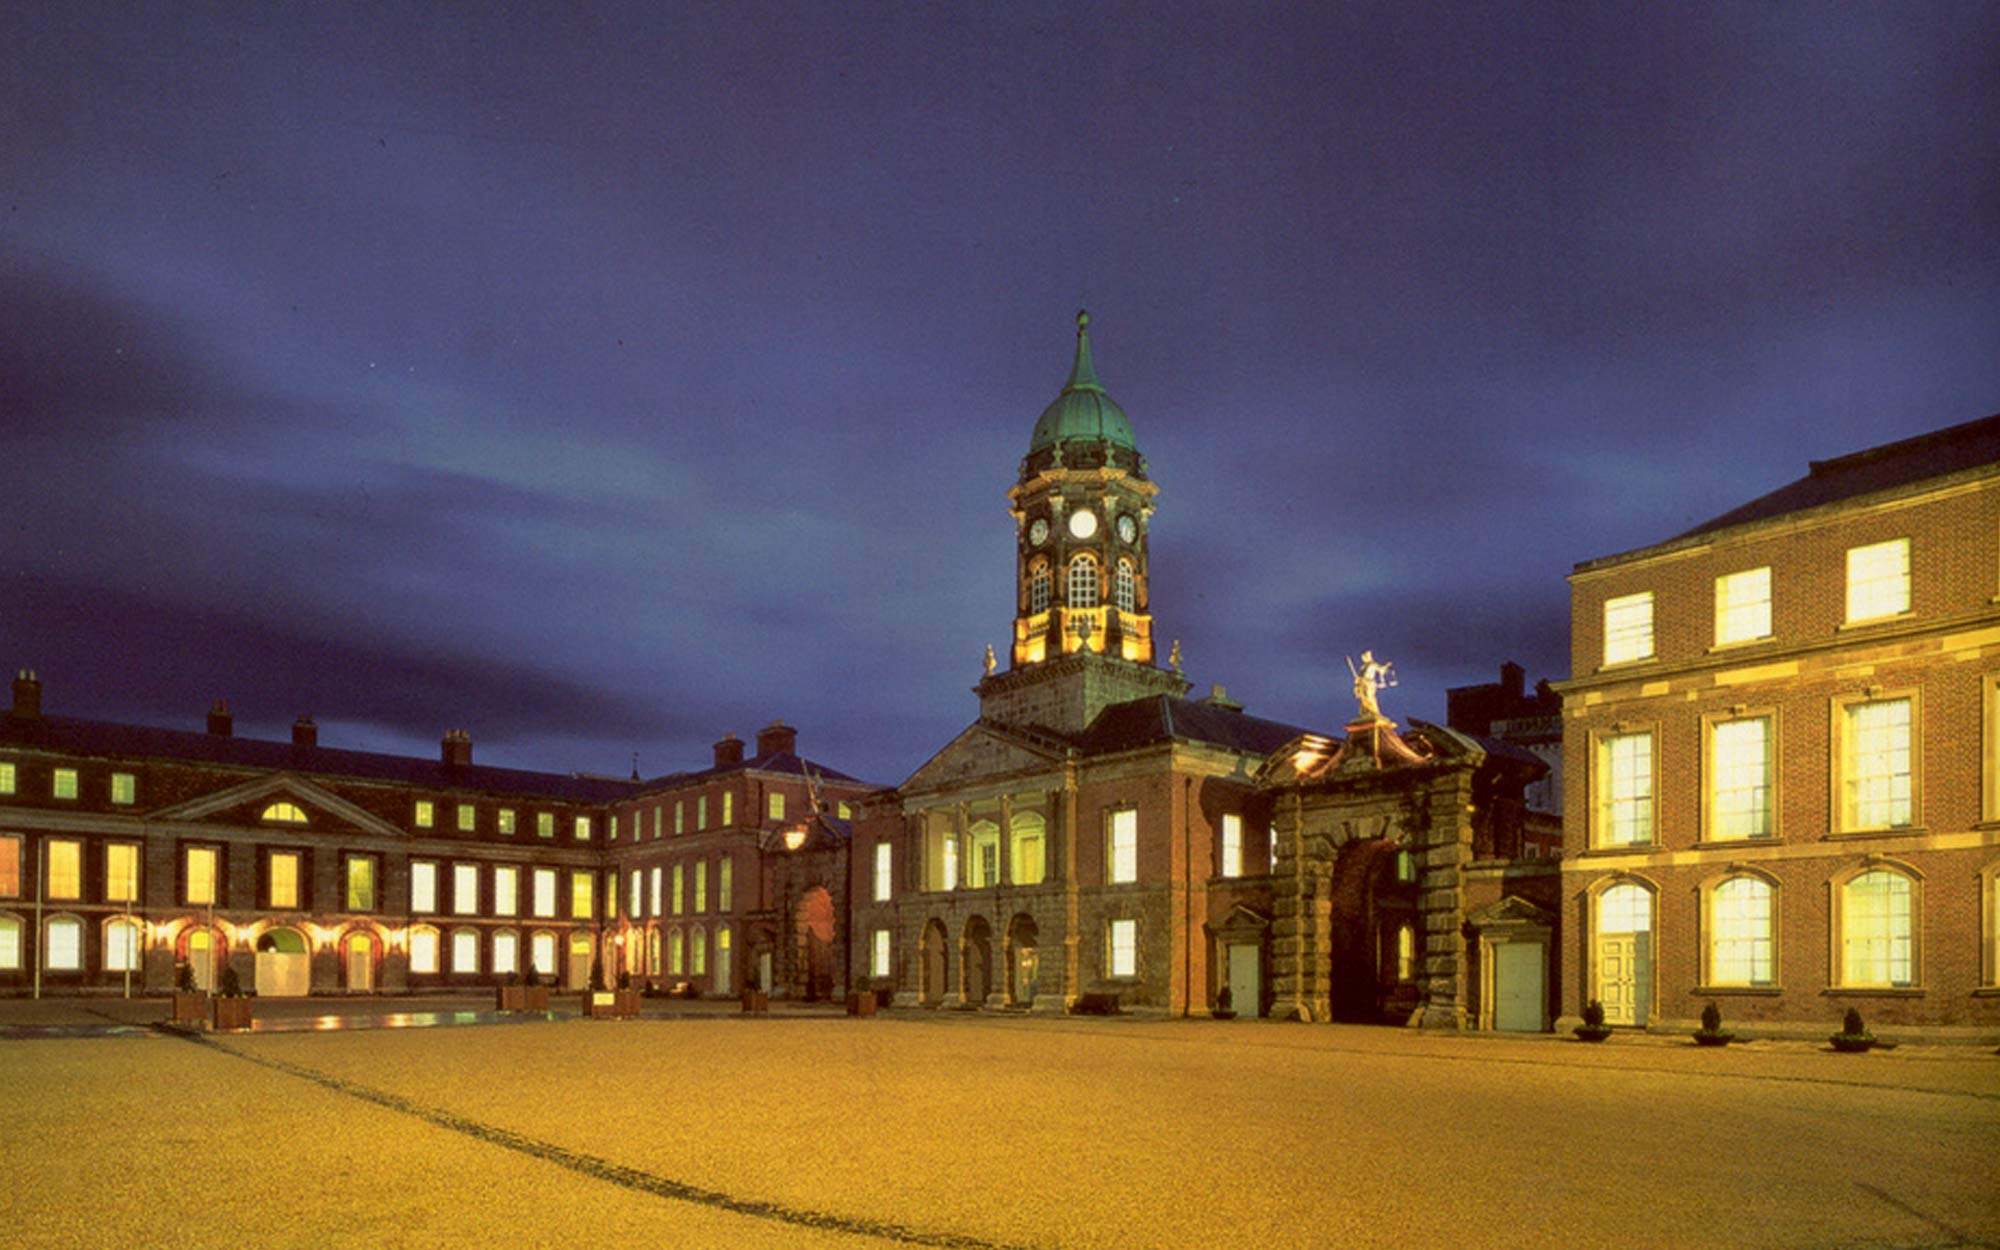 Courtyard of Dublin Castle at night